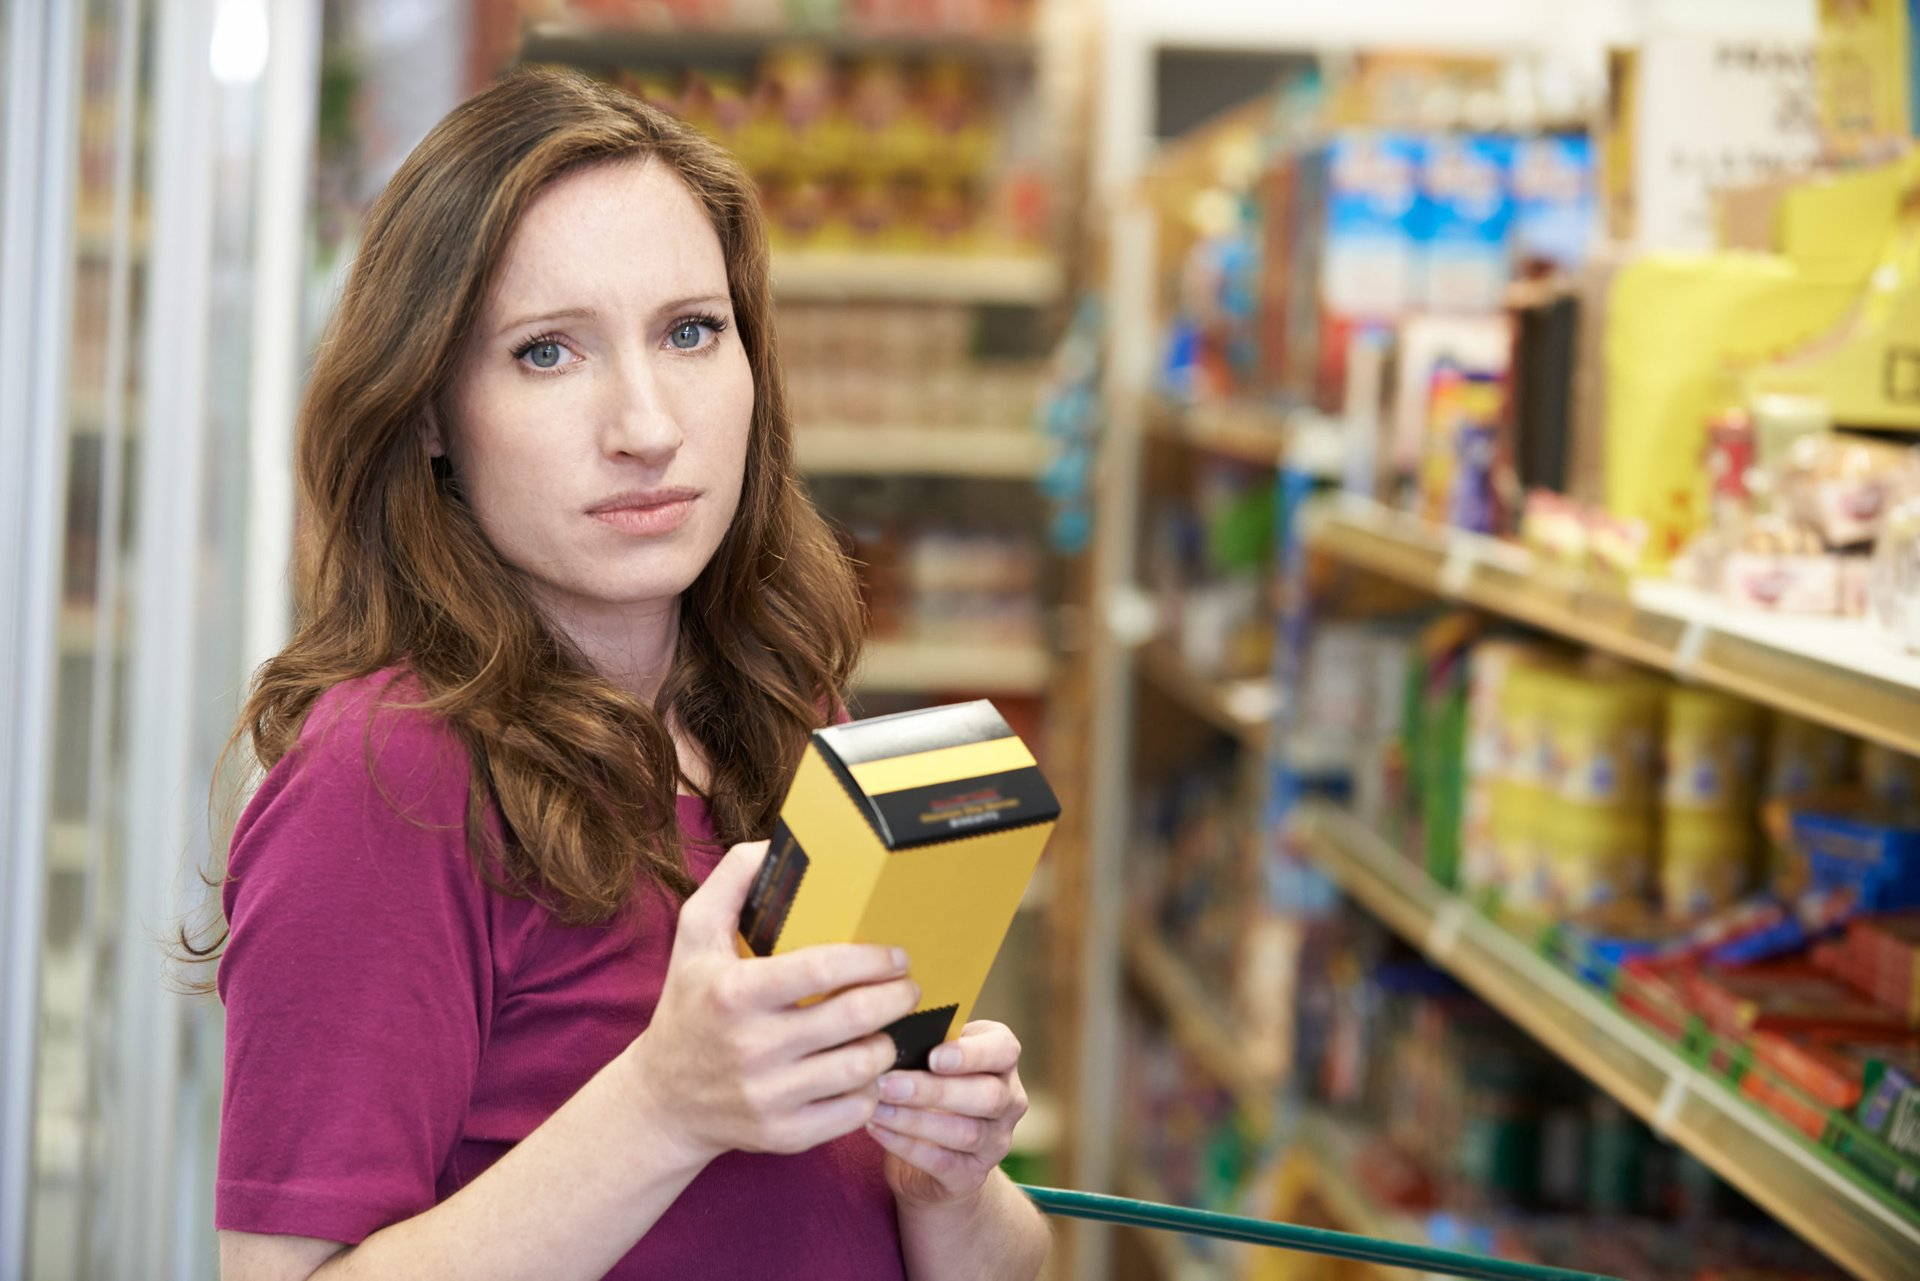 Woman checking label in grocery store